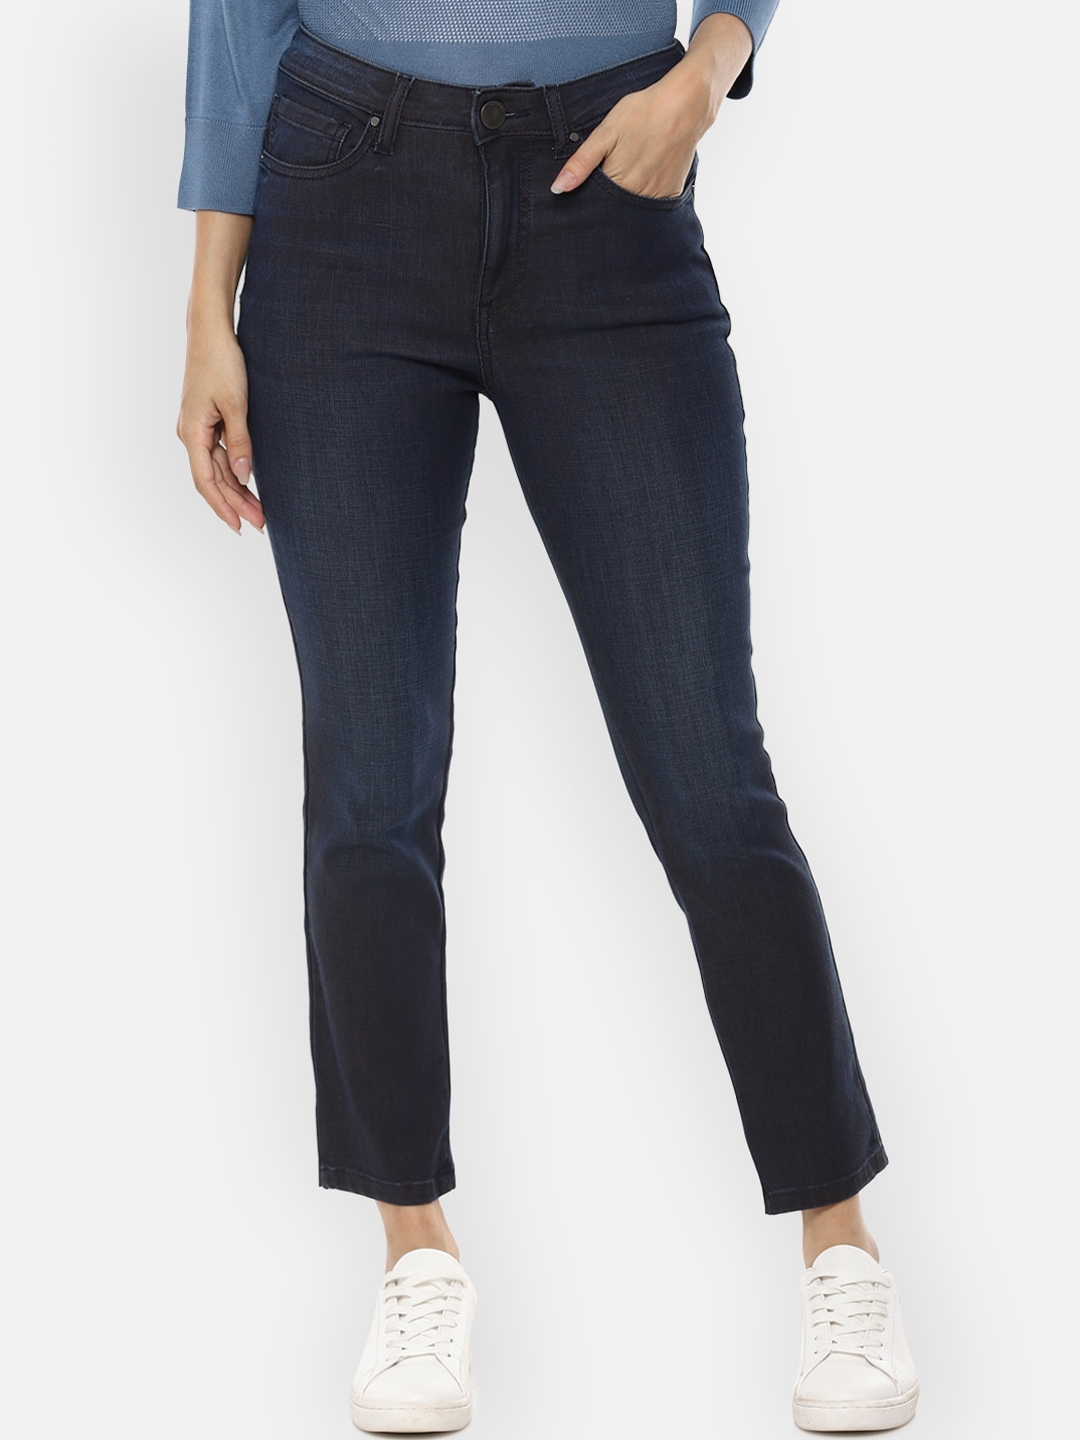 Van Heusen Woman Women Navy Blue Slim Fit Jeans